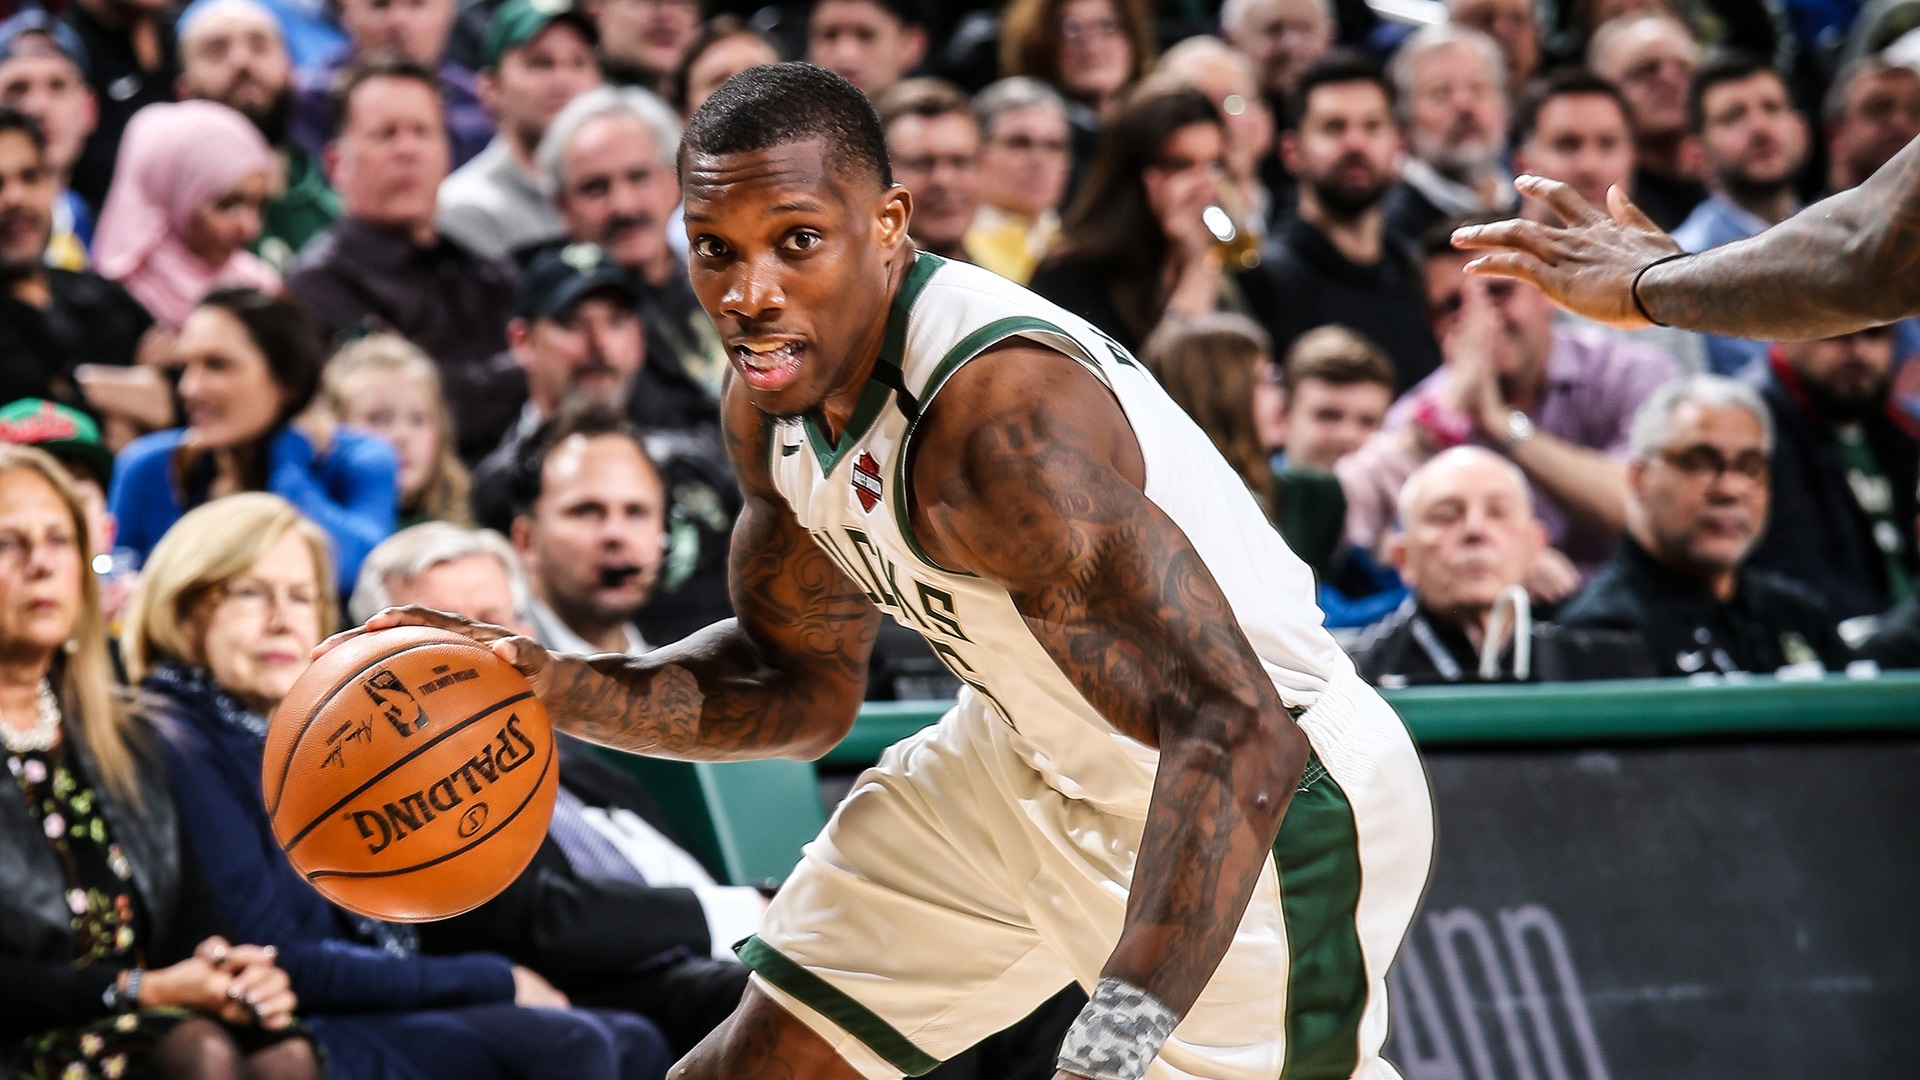 The Best of The Bledshow   Eric Bledsoe 2019-20 Highlights